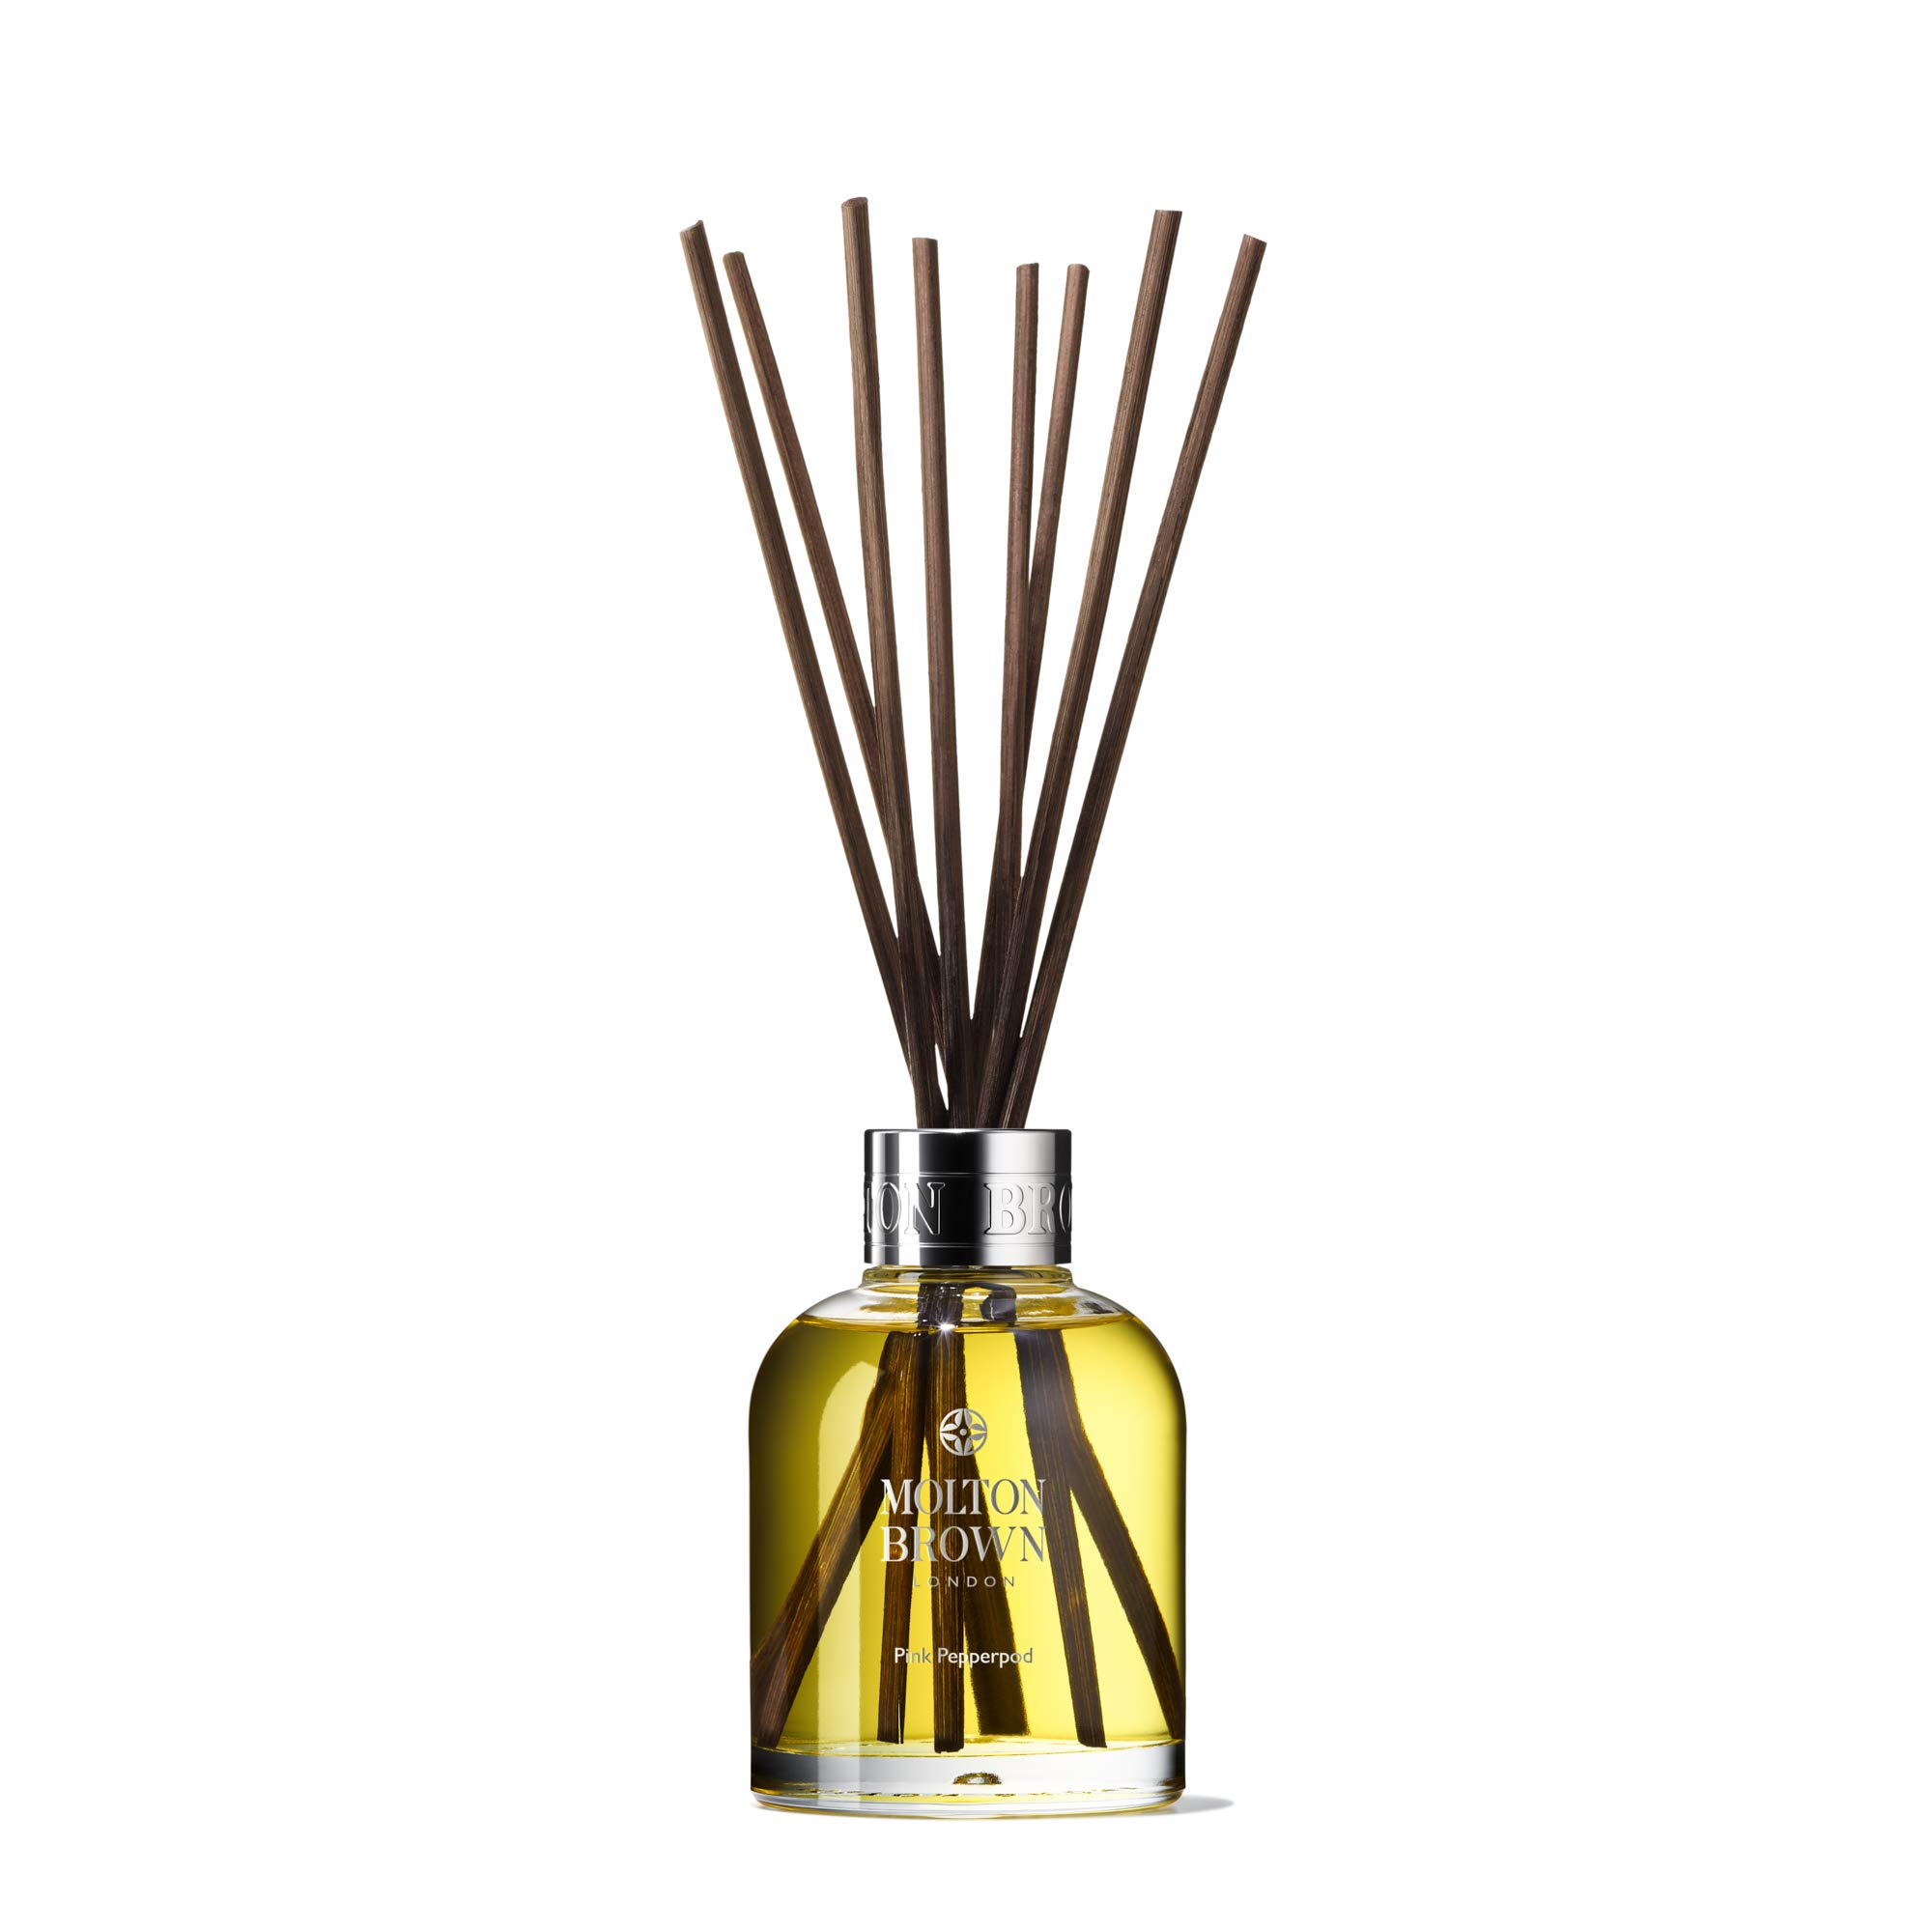 Molton Brown Aroma Reeds, Pink Pepperpod, 5 fl. oz.